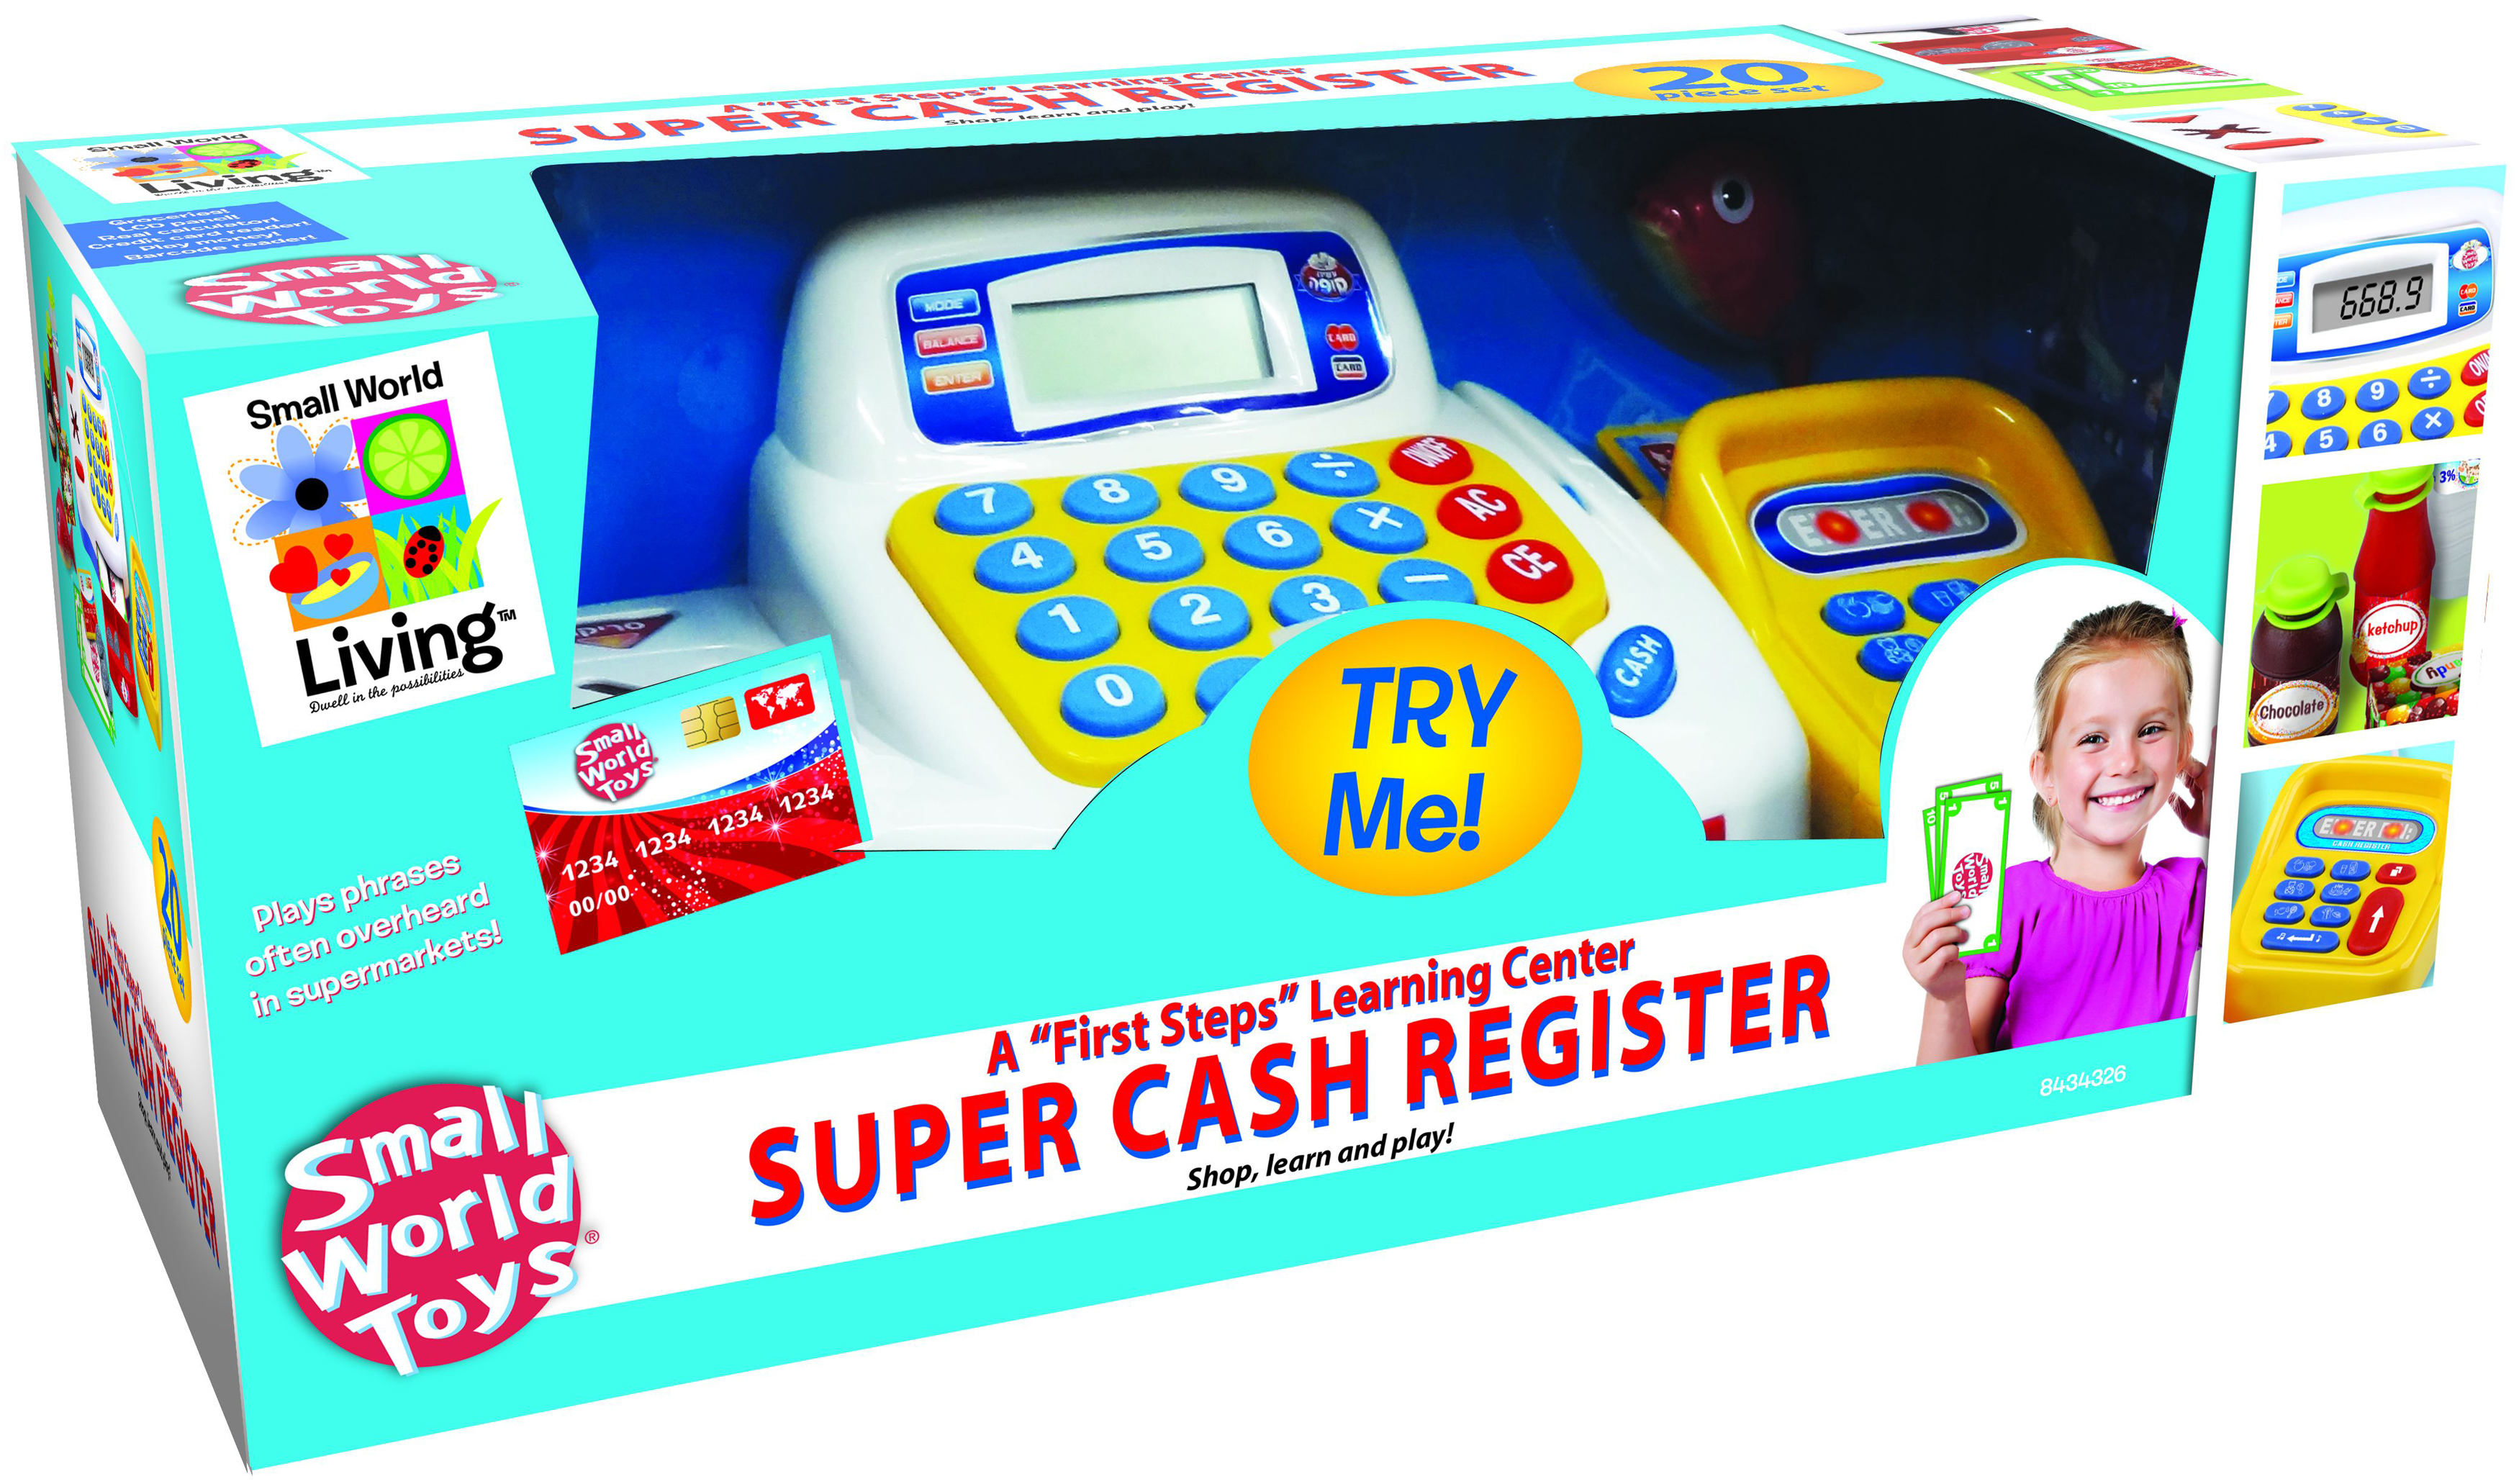 Small World Toys Talking Cash Register Toy-Super Cash Register by Small World Toys